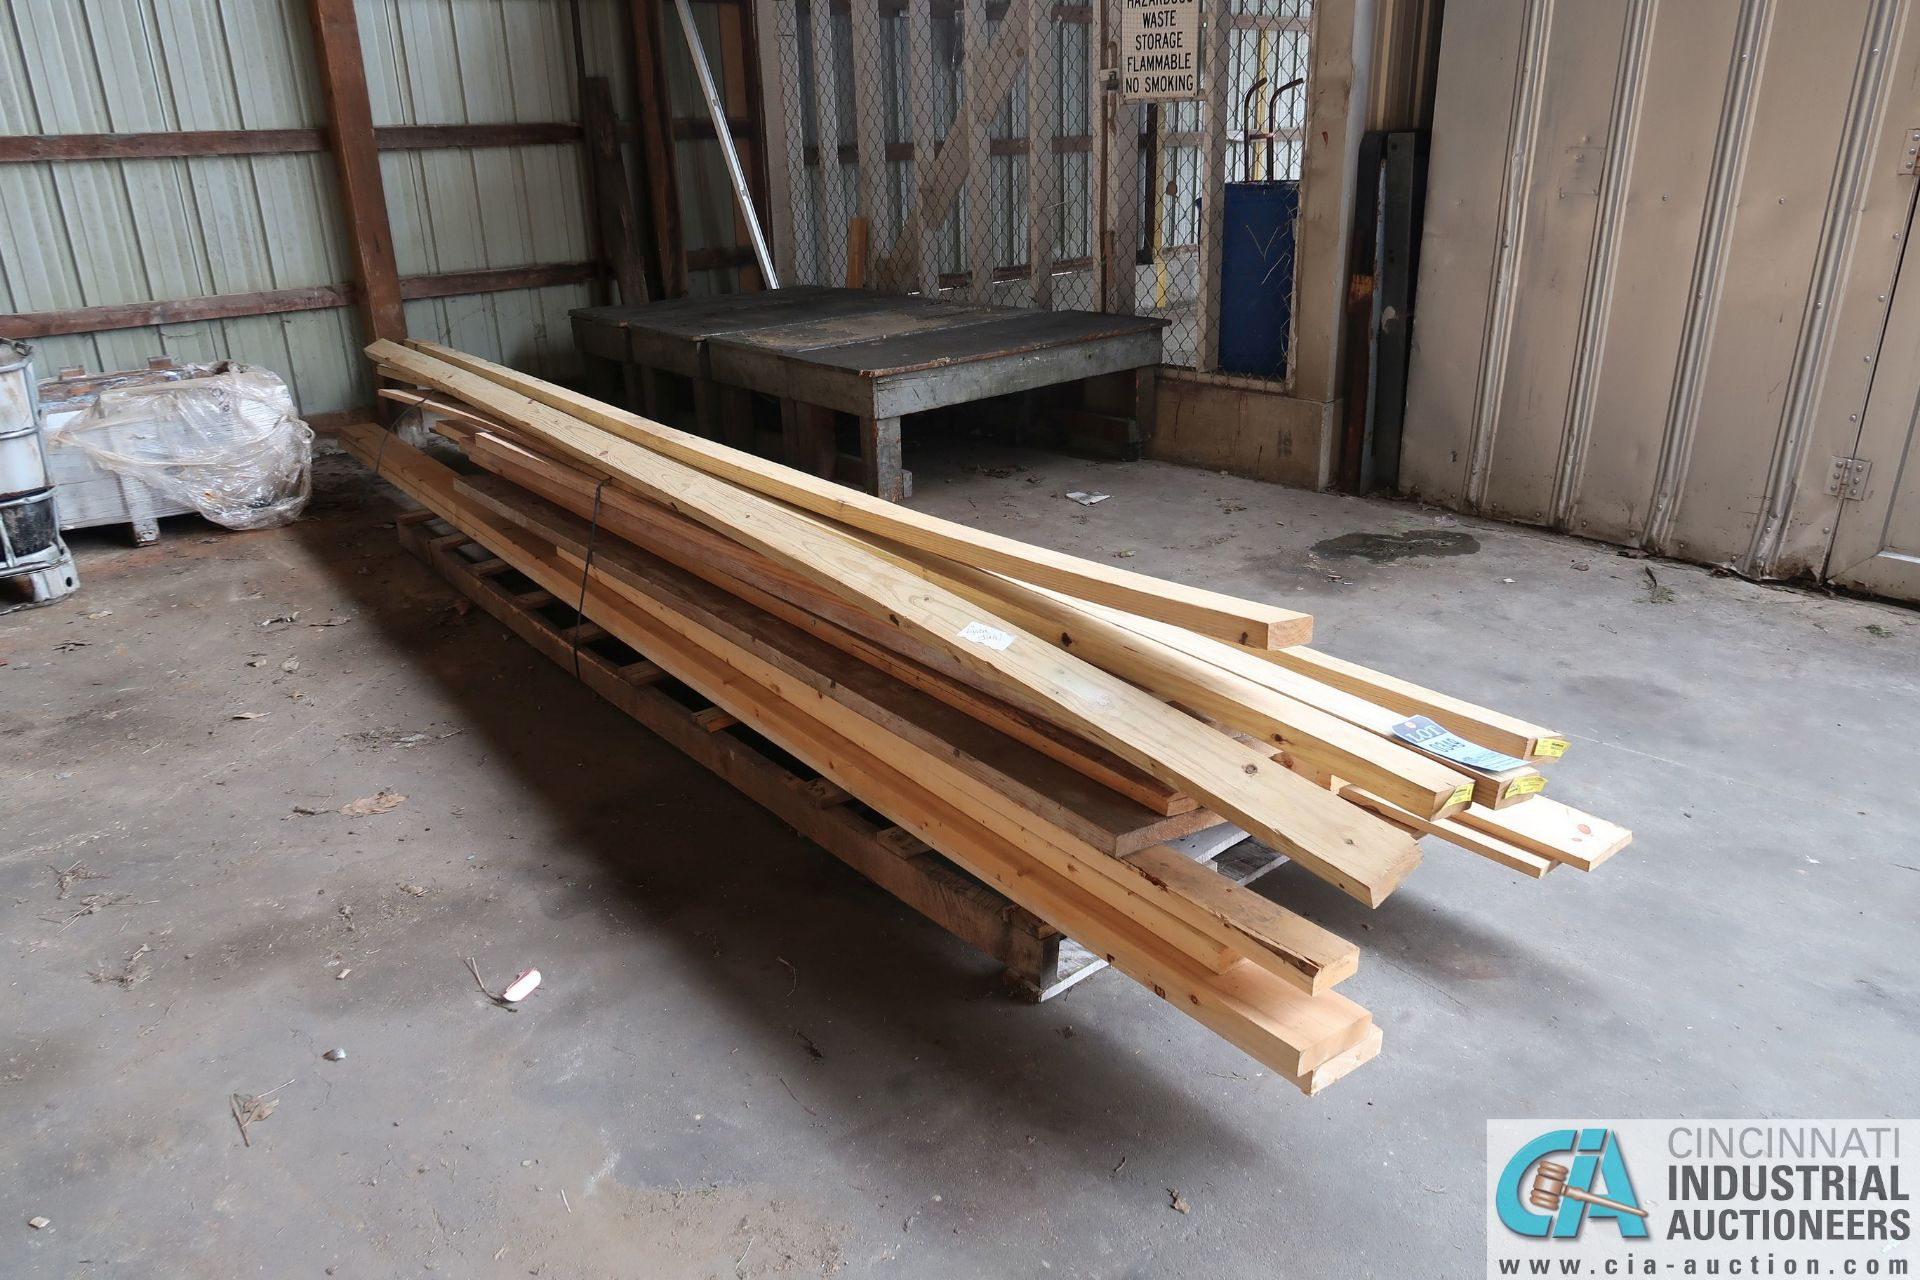 (LOT) MISCELLANEOUS SIZE AND LENGTH CONSTRUCTION LUMBER - Image 2 of 4